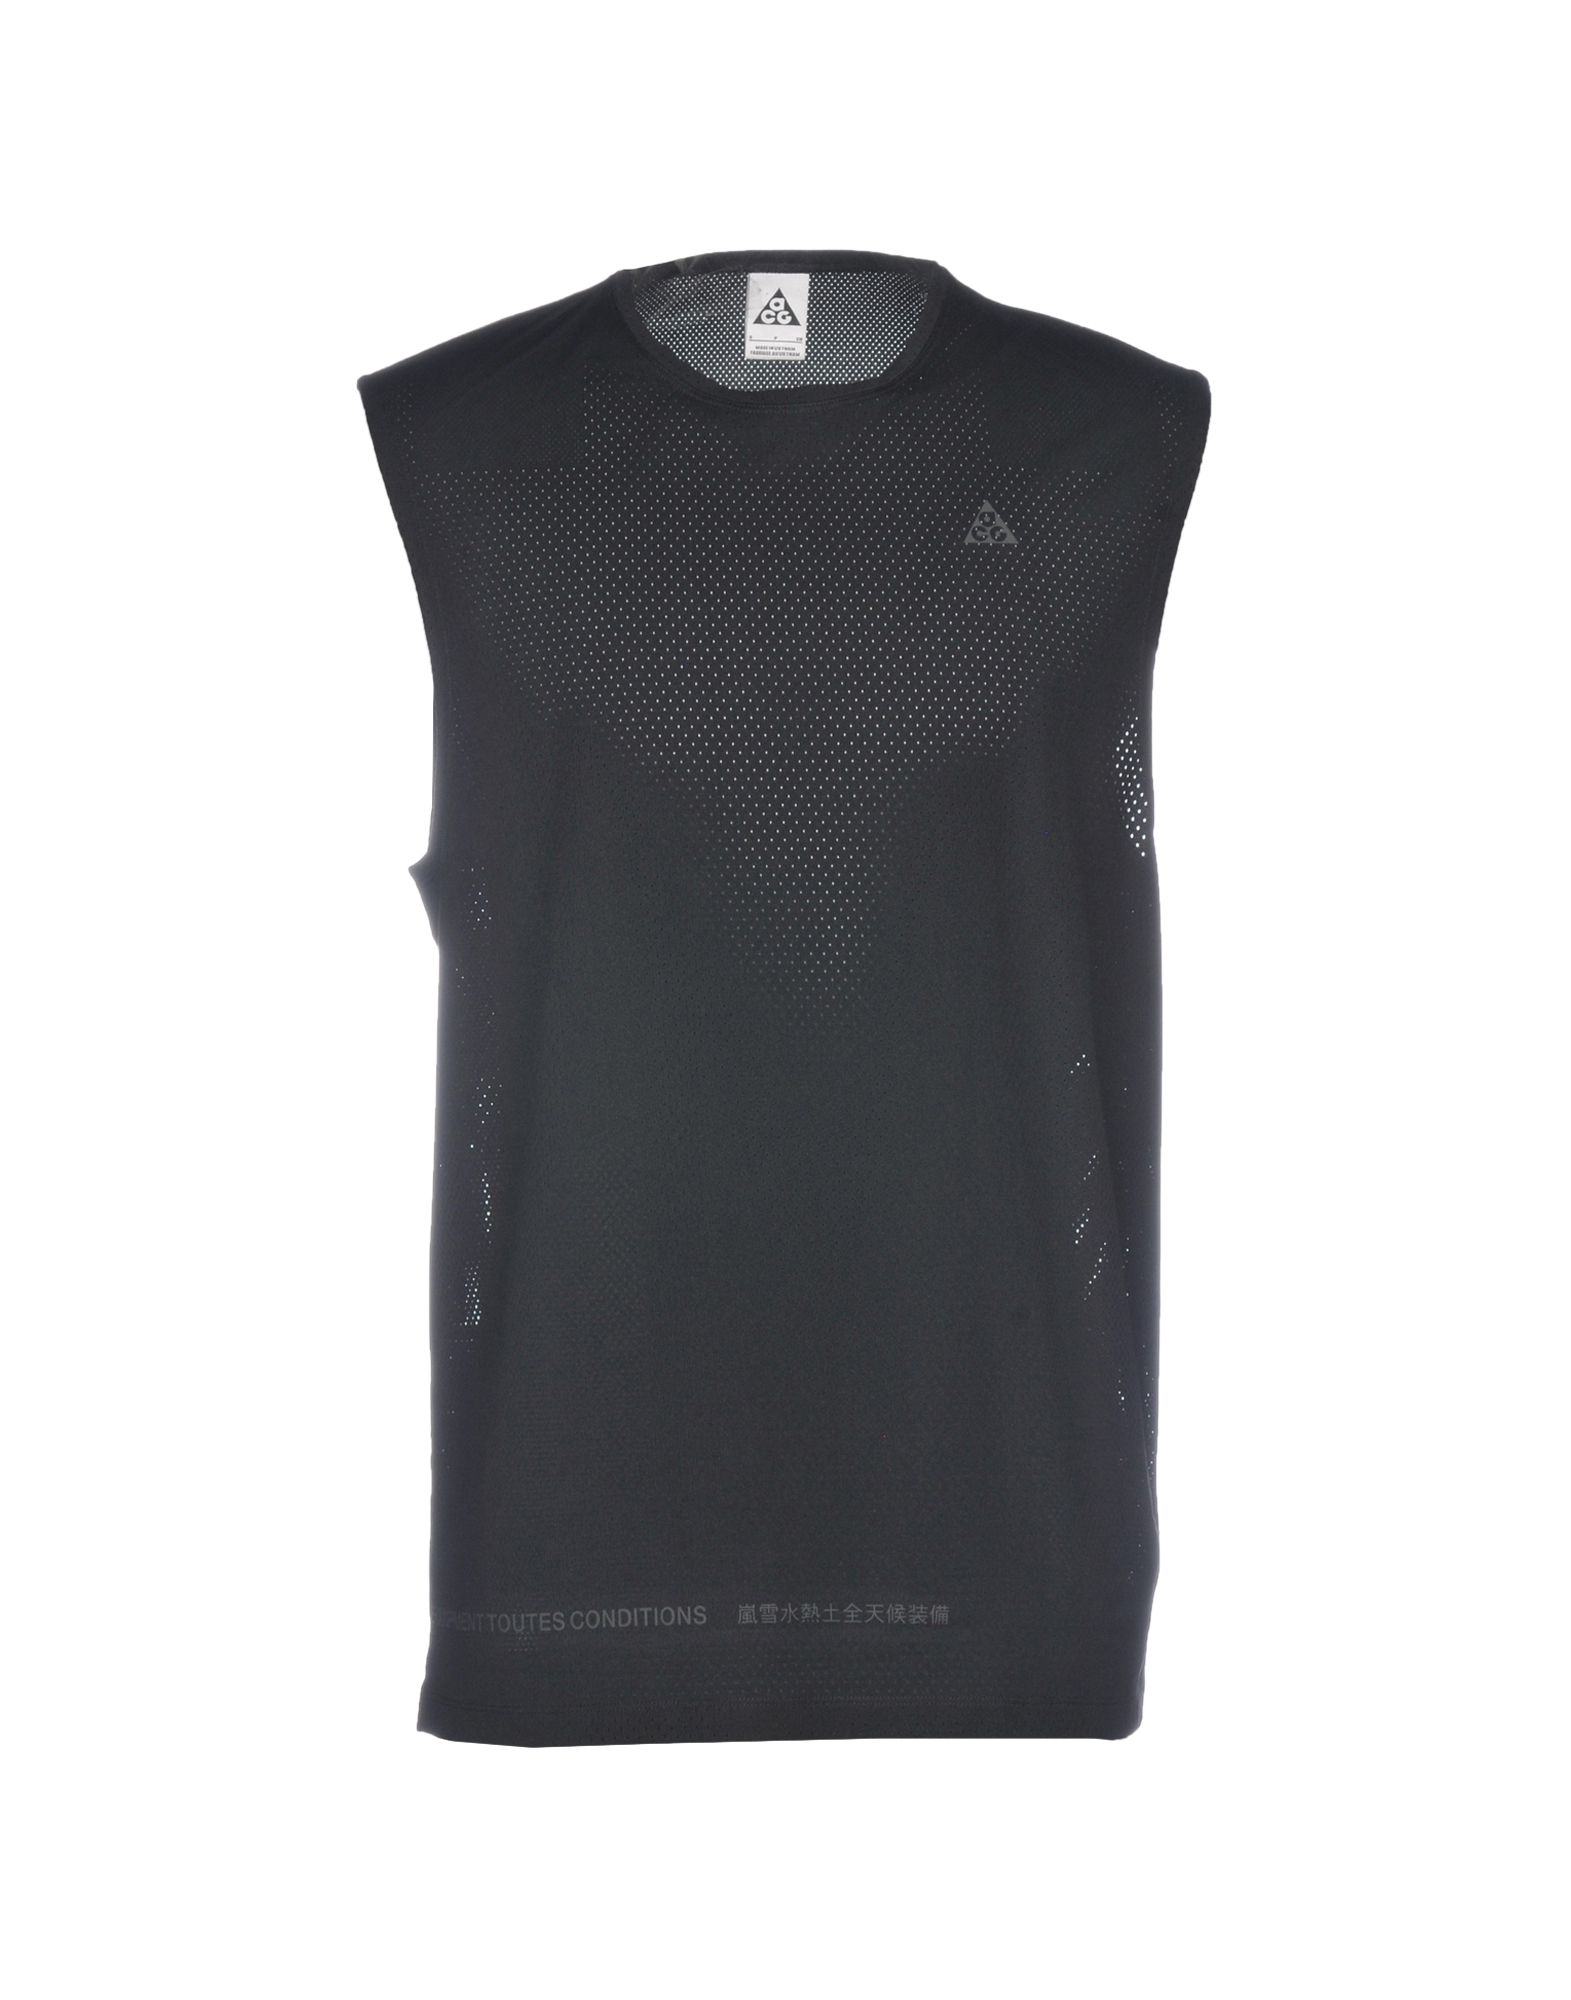 d38efe16b31fb0 Sleeveless Shirts Nike – EDGE Engineering and Consulting Limited